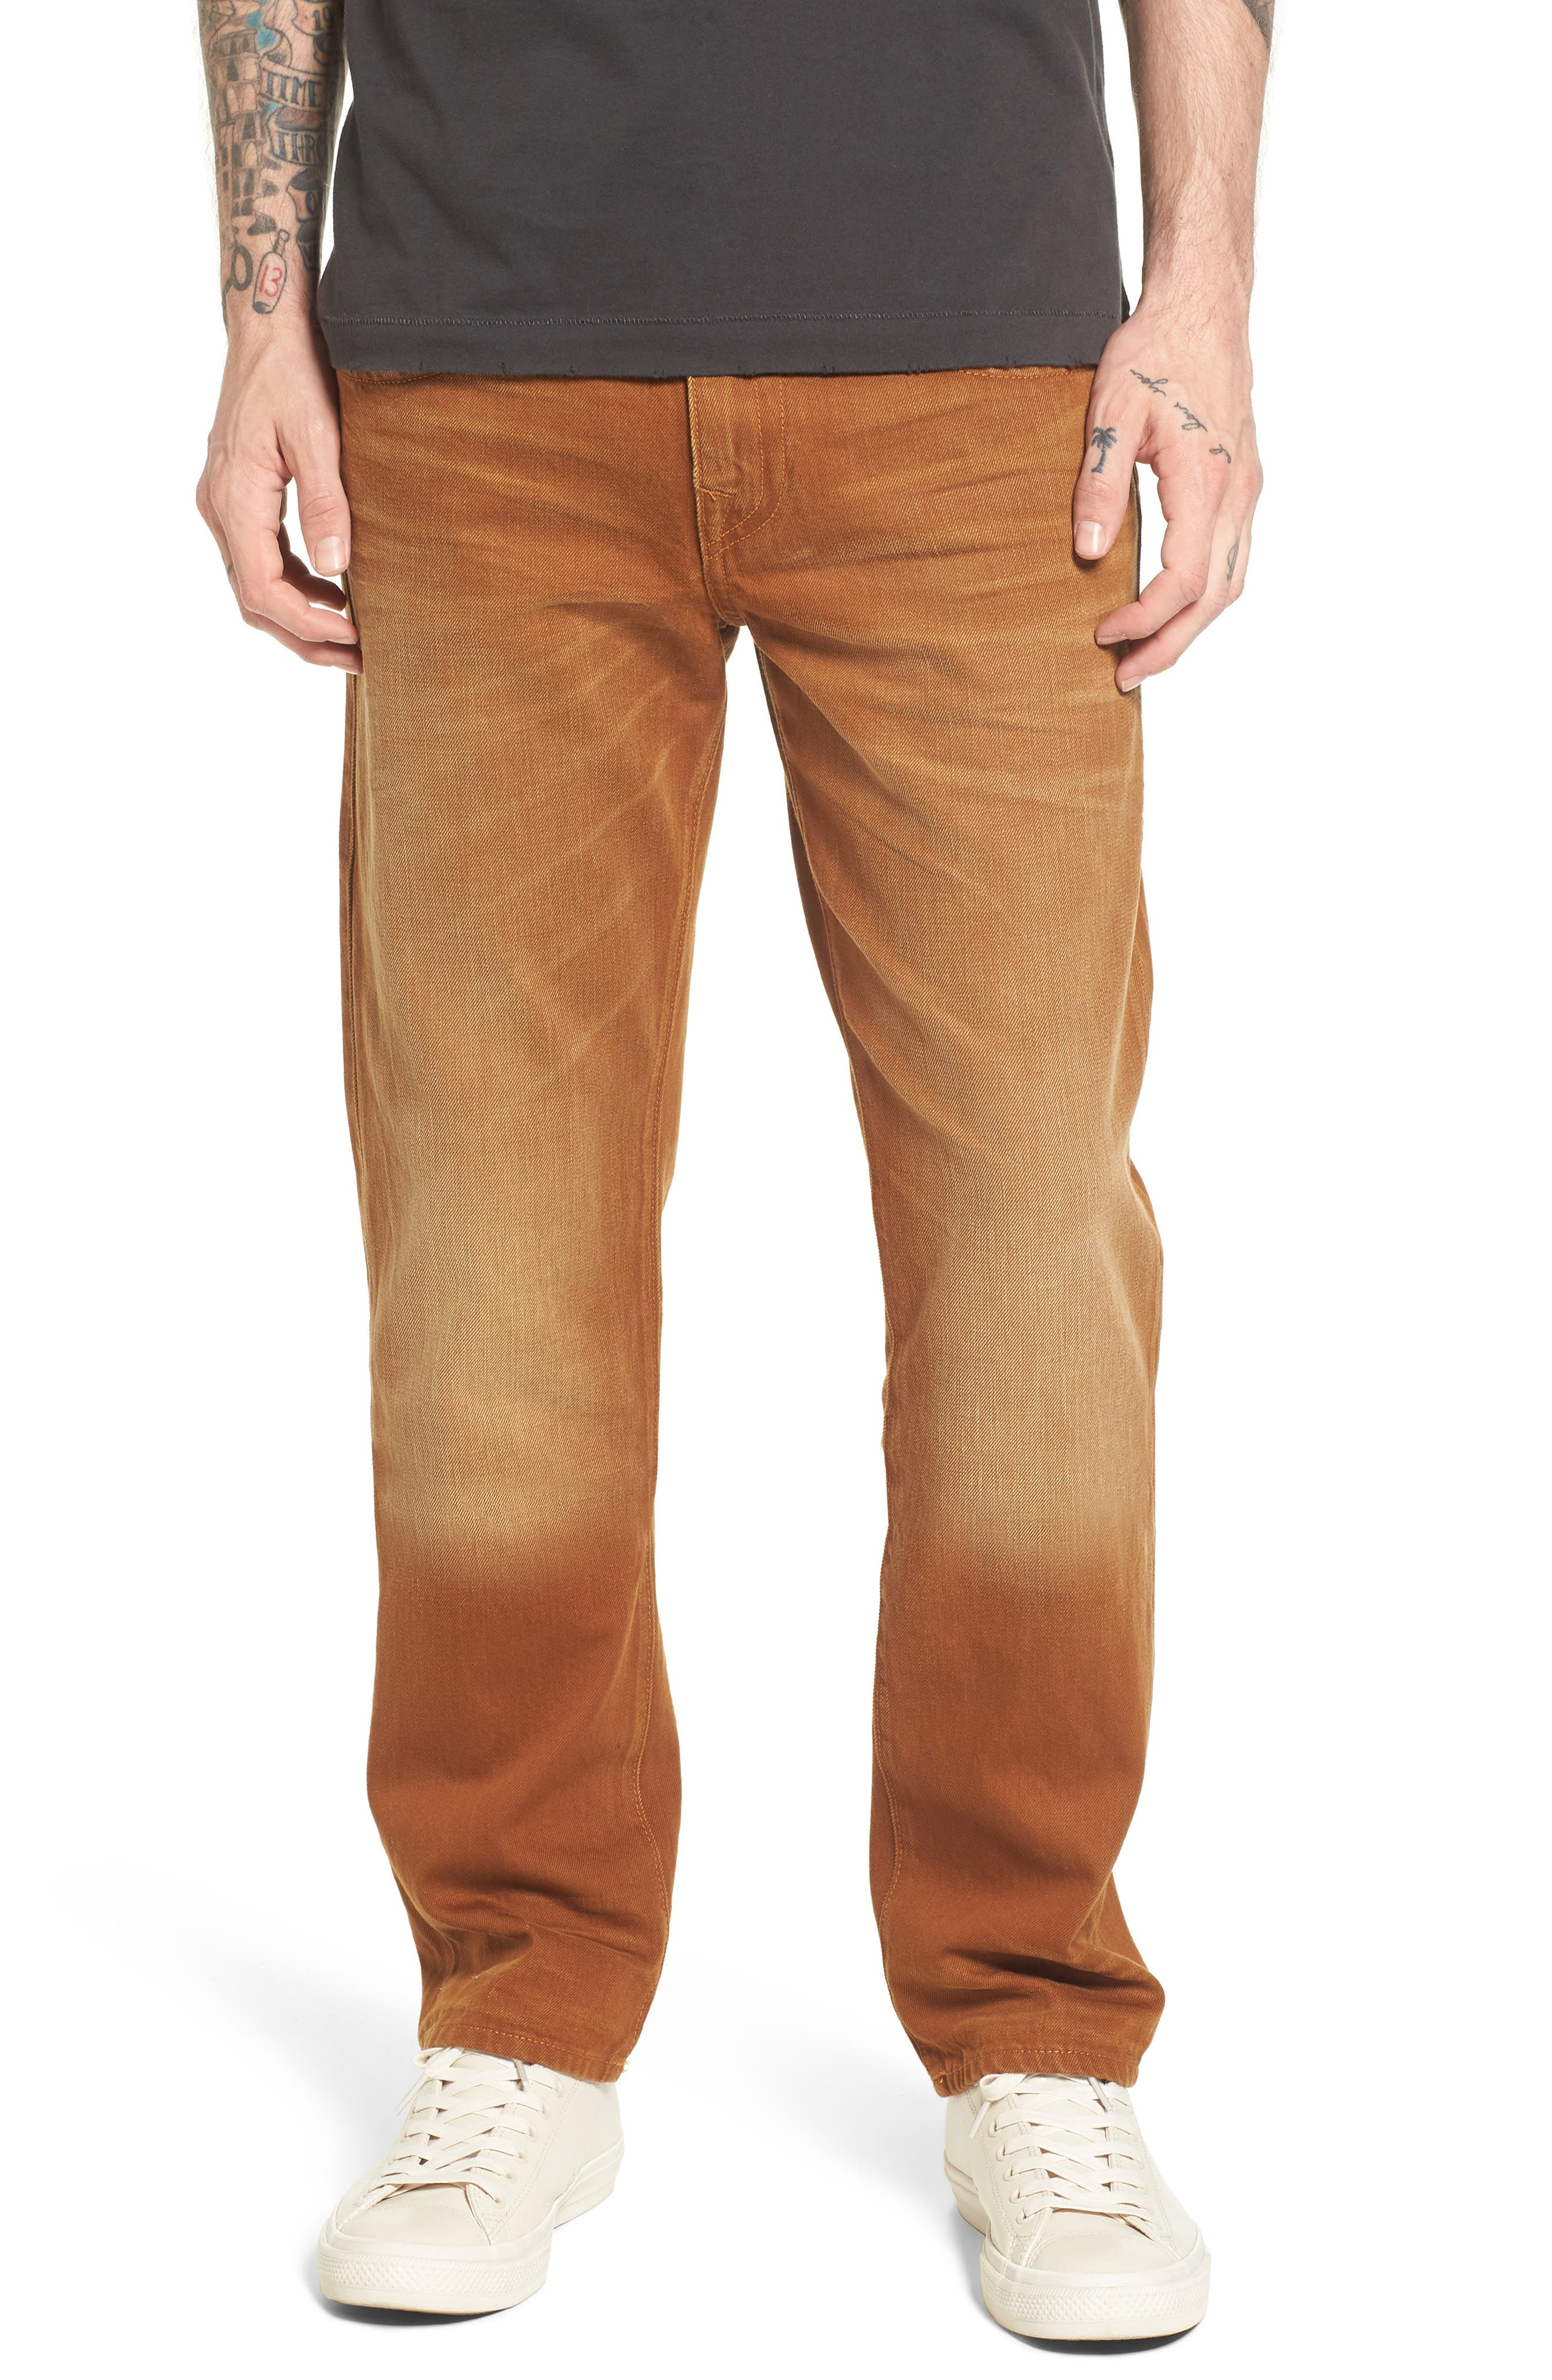 Geno Straight Fit Jeans,                             Main thumbnail 1, color,                             Golden Road